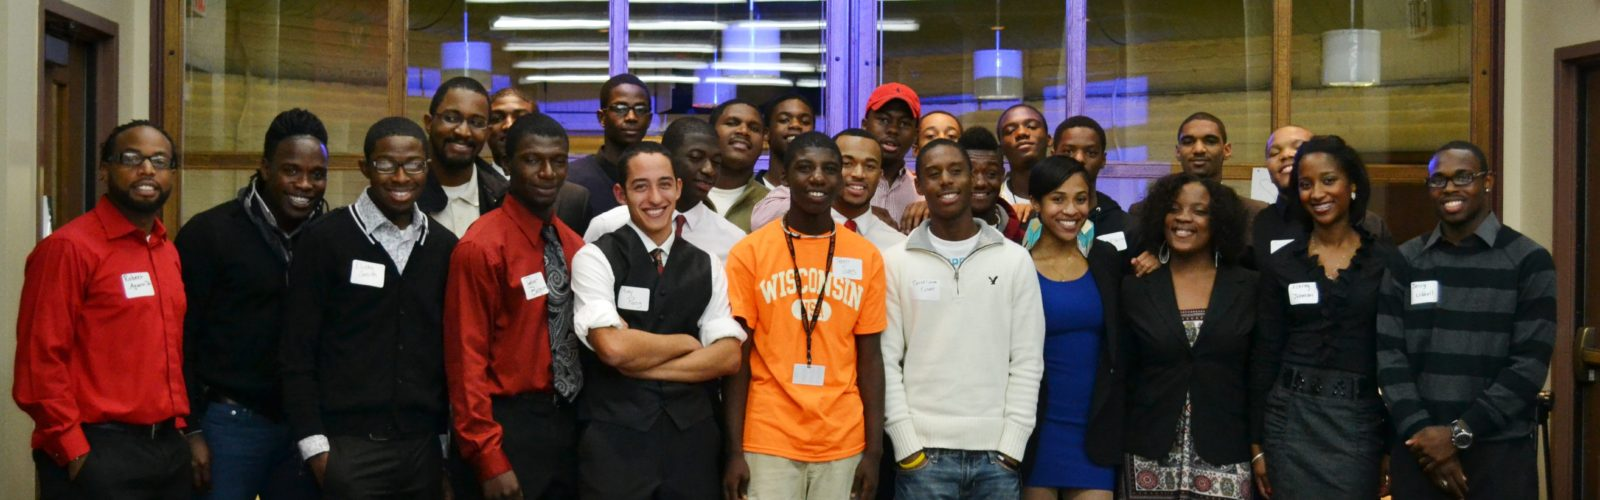 The original members of the UW-Madison Wisconsin Association of Black Men in 2011.